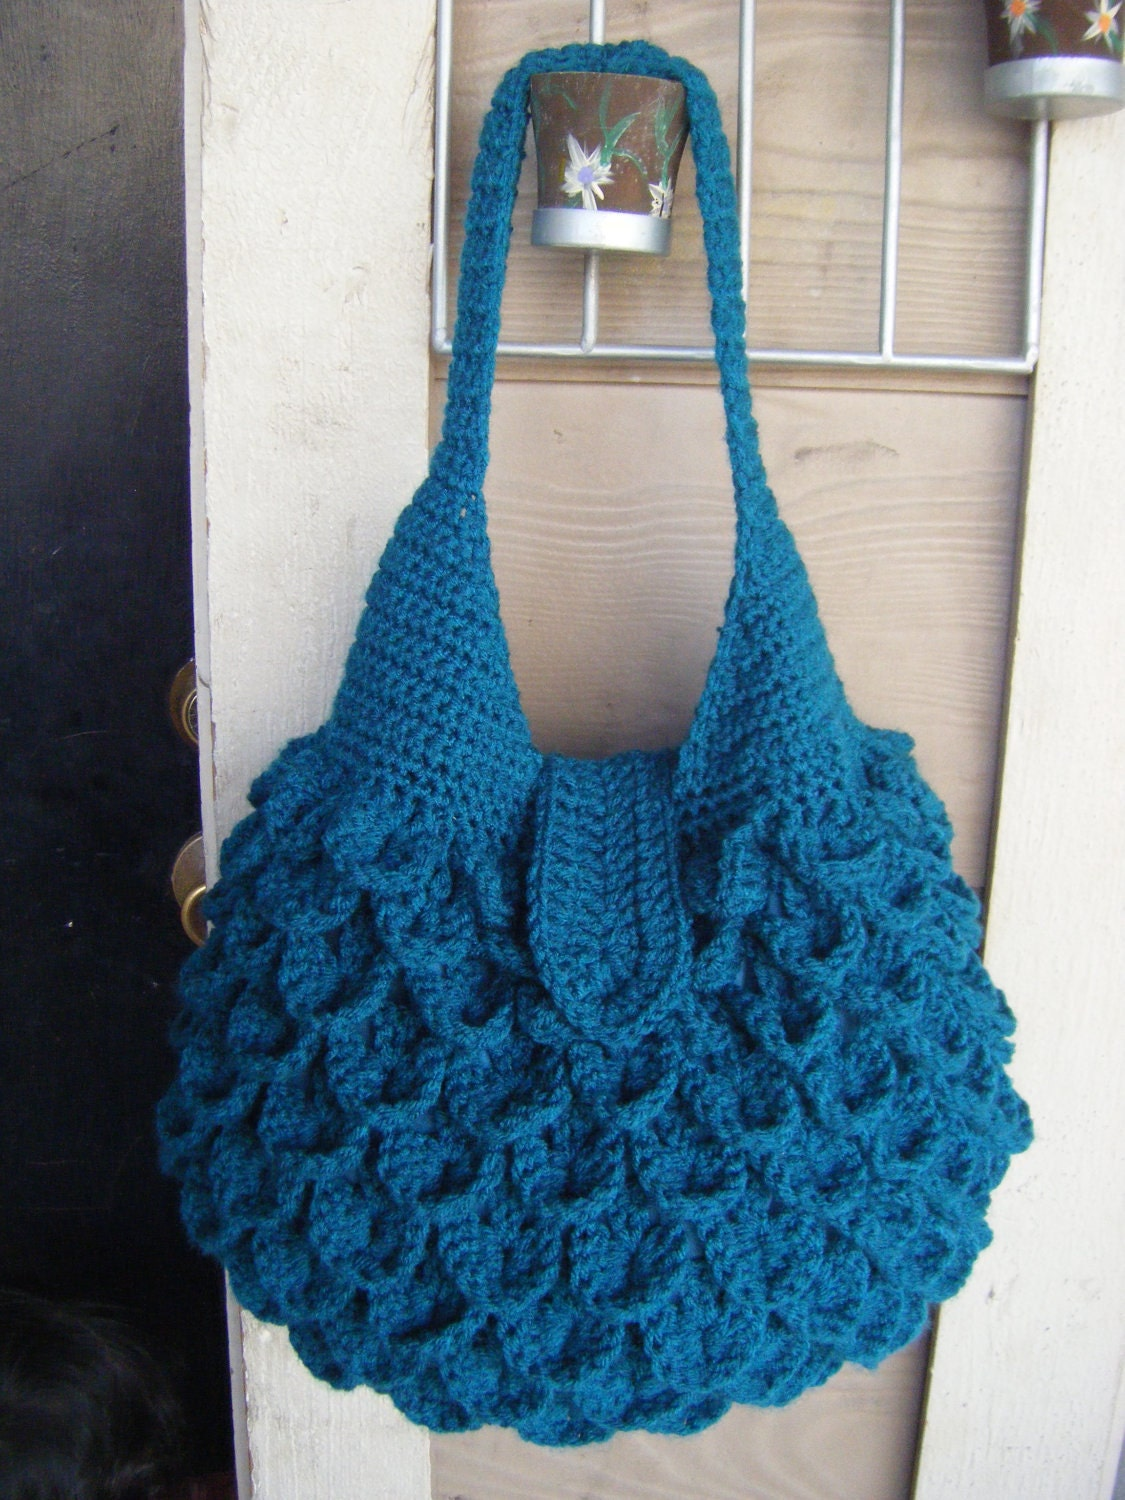 Crochet Satchel Bag Pattern : Crochet Crocodile Bag Pattern PERMISSION SELL by NatalieSpot